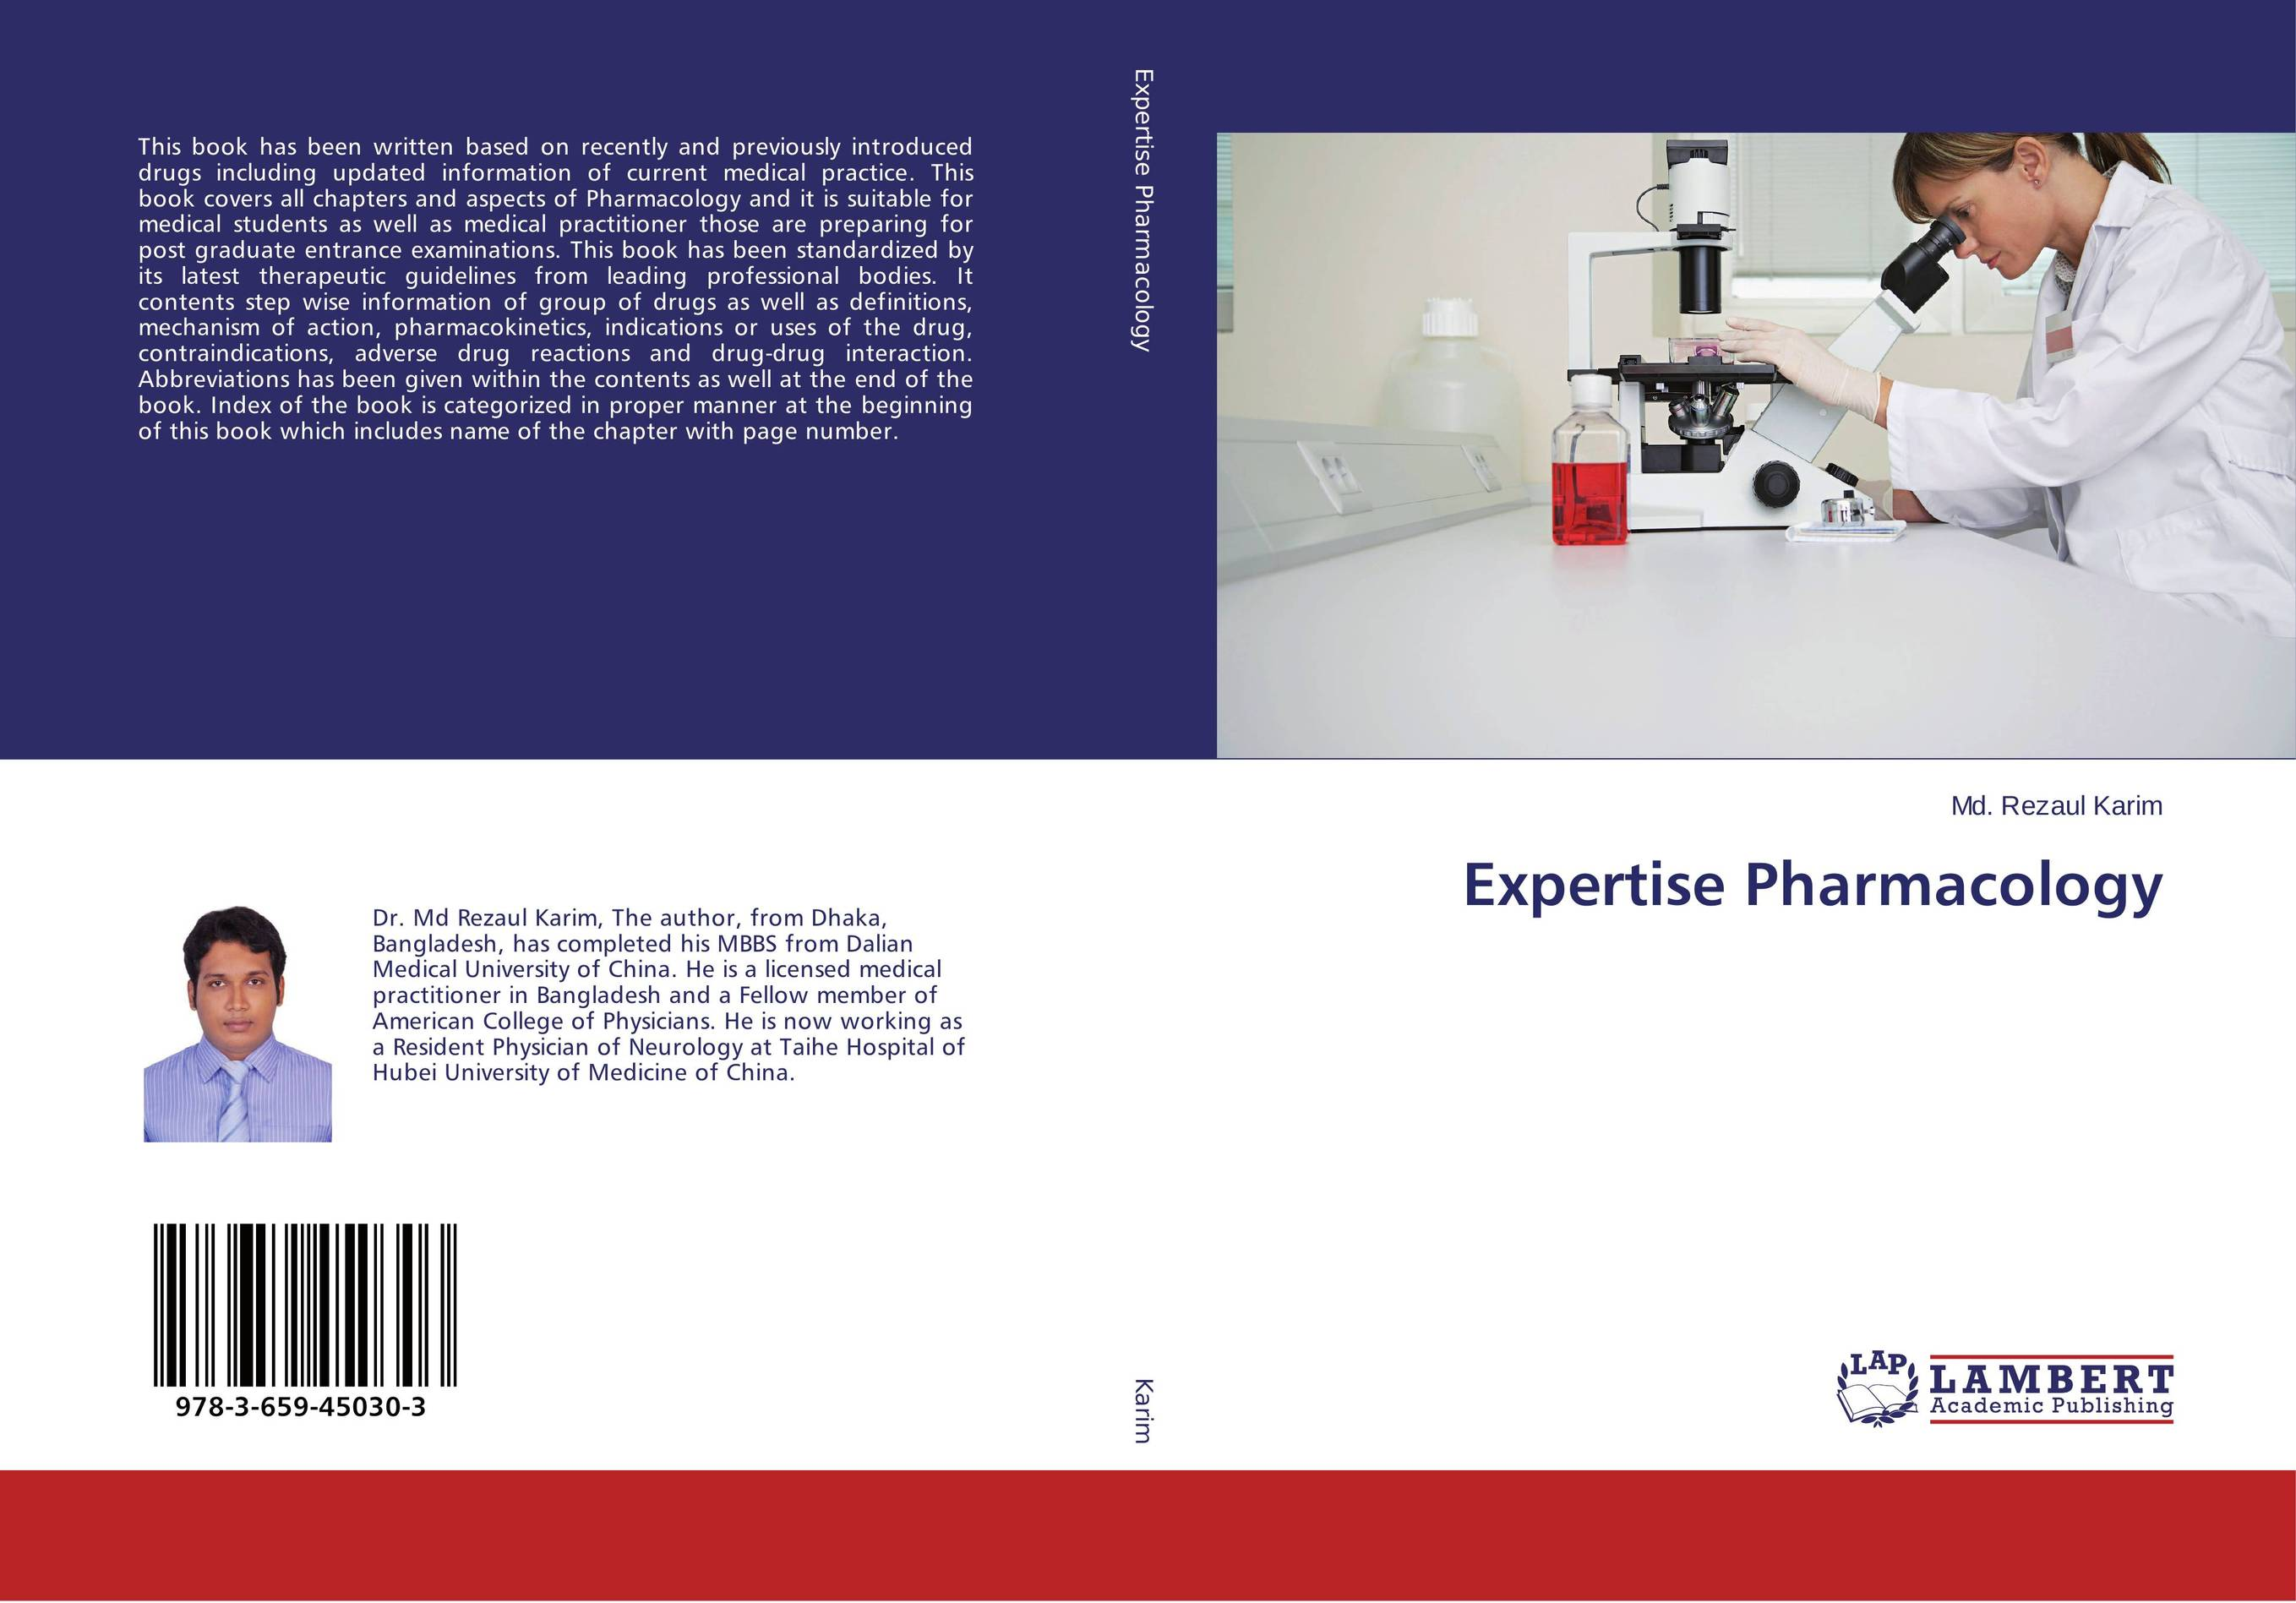 Expertise Pharmacology the role of evaluation as a mechanism for advancing principal practice